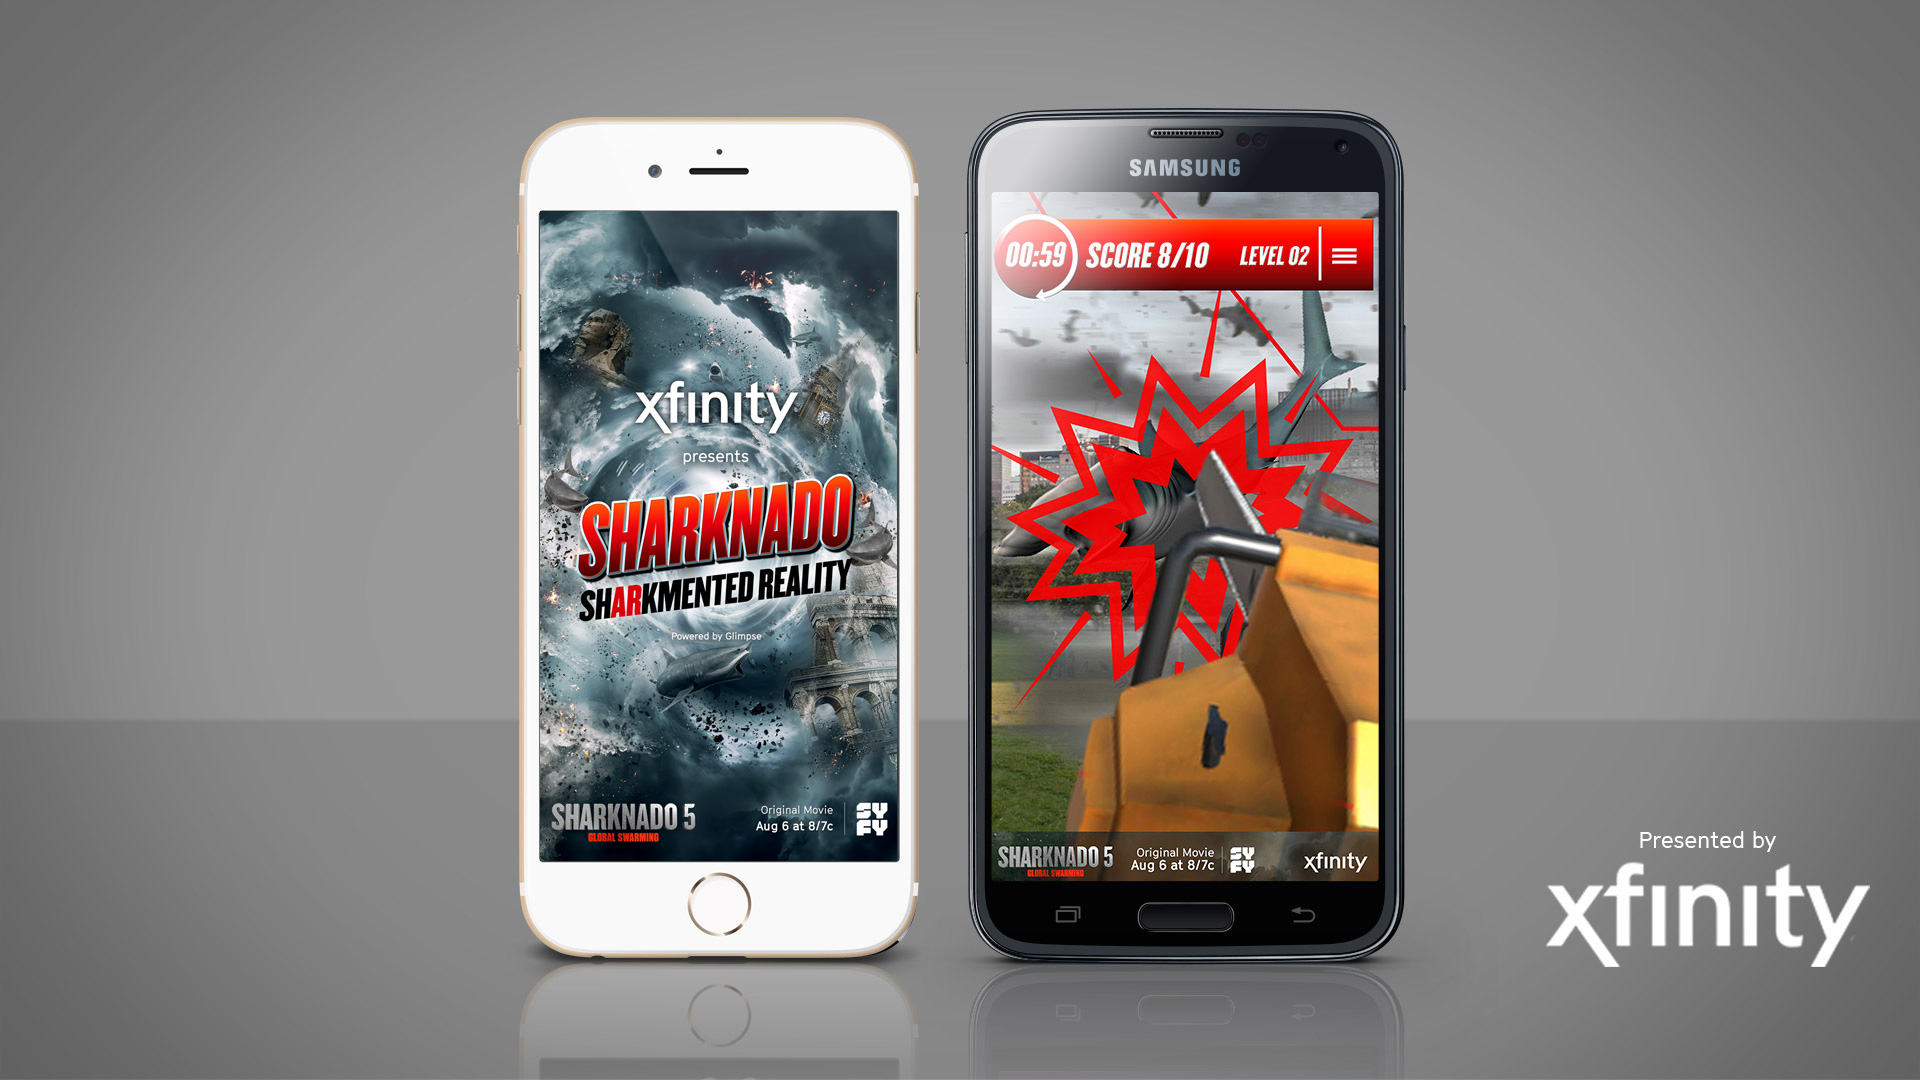 New augmented reality mobile game for Sharknado